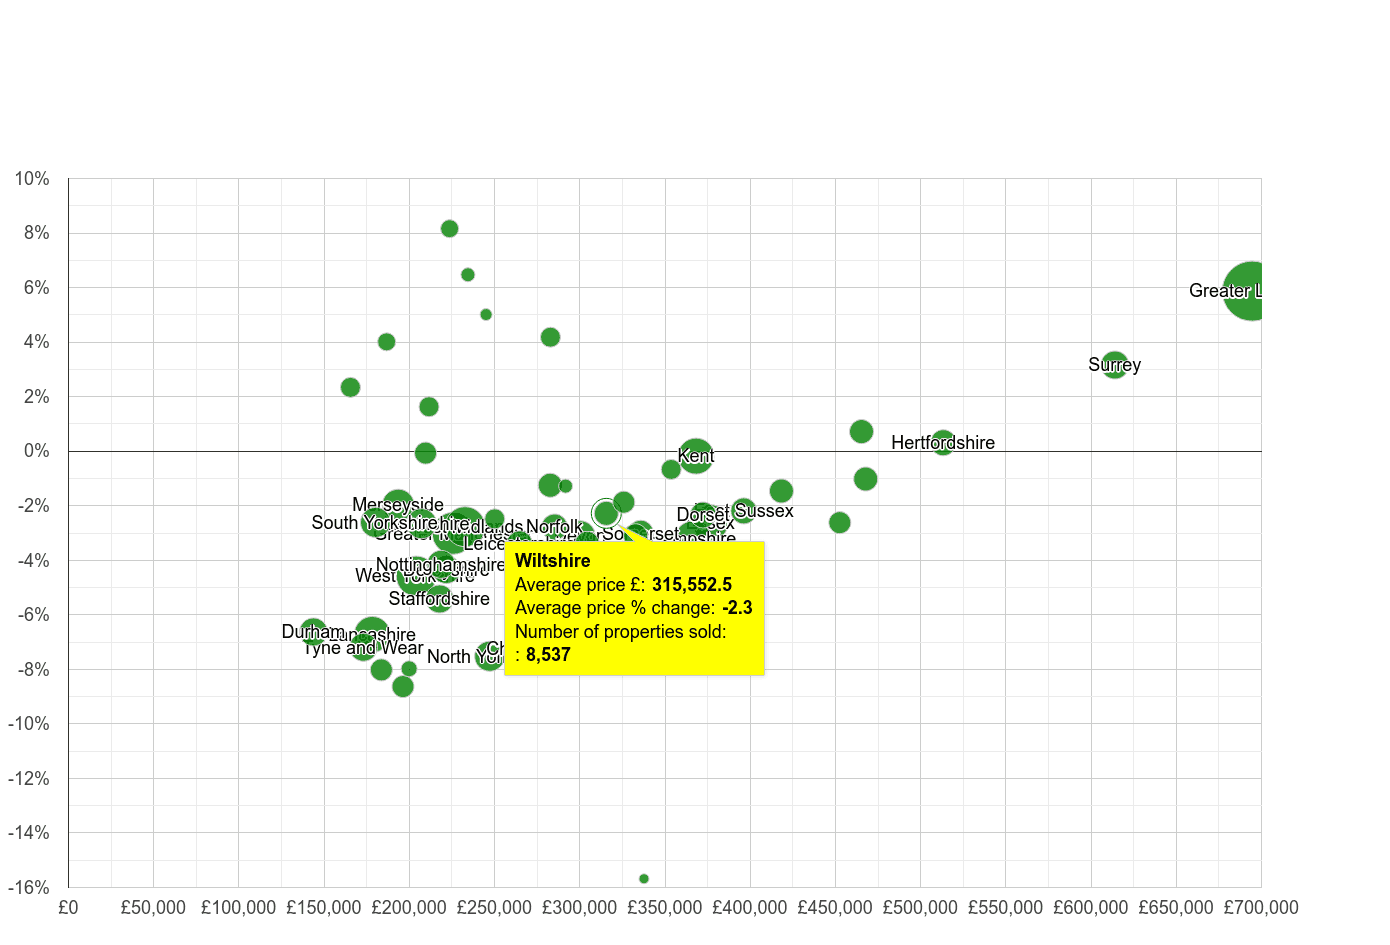 Wiltshire house prices compared to other counties